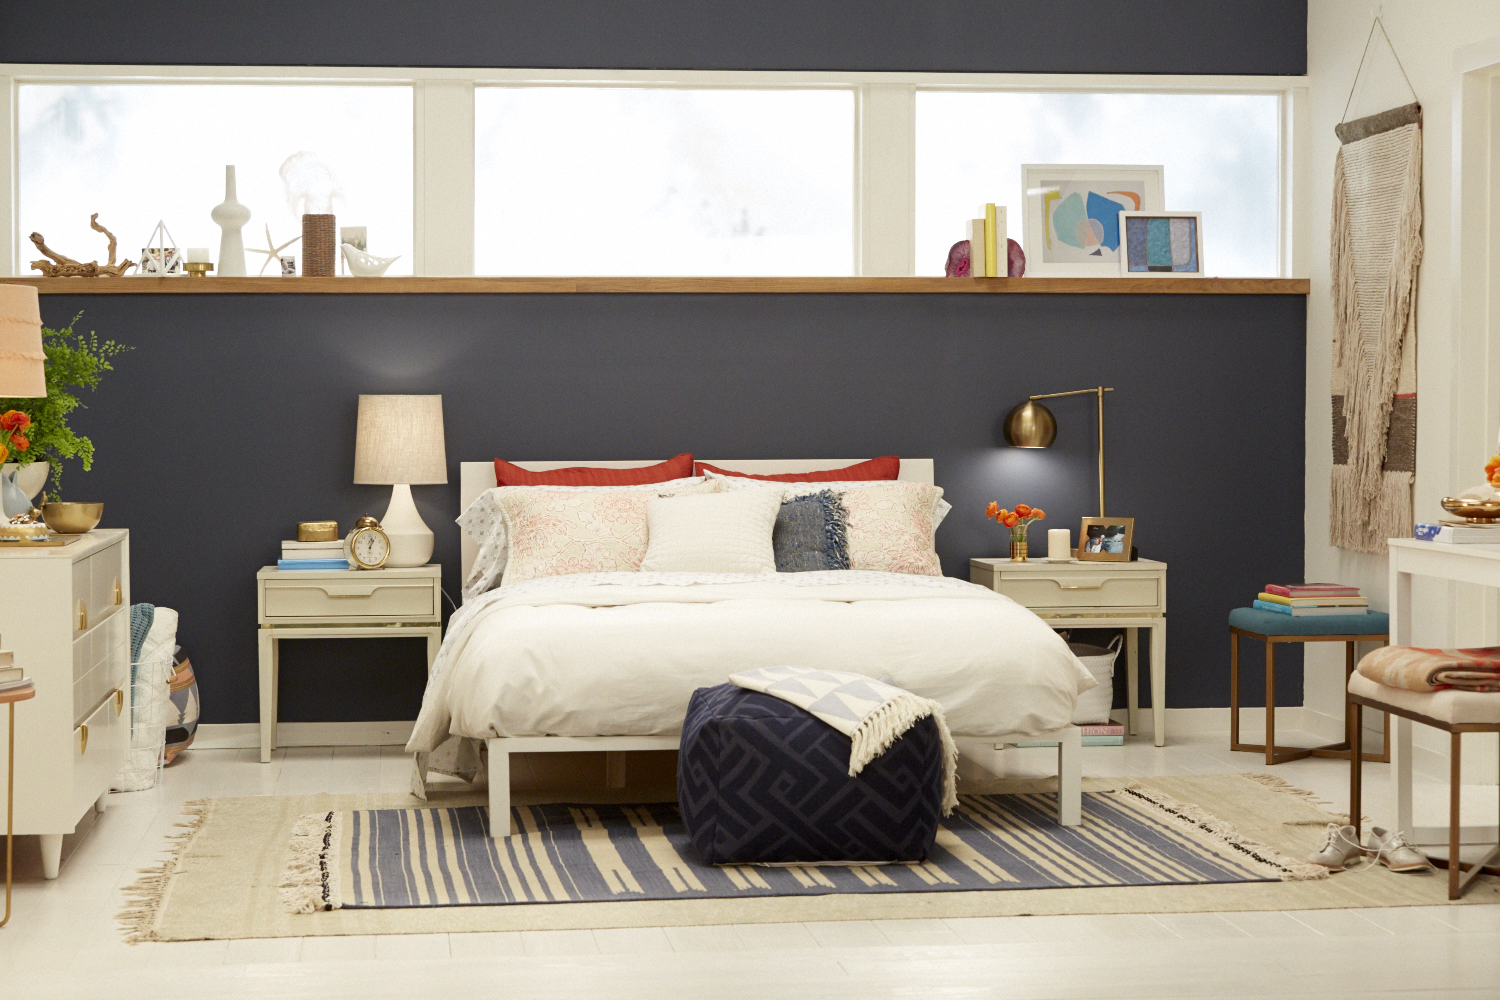 Target Accent Wall_Emily Henderson_Bedroom_Blue_Bedding_Midcentury Modern 3